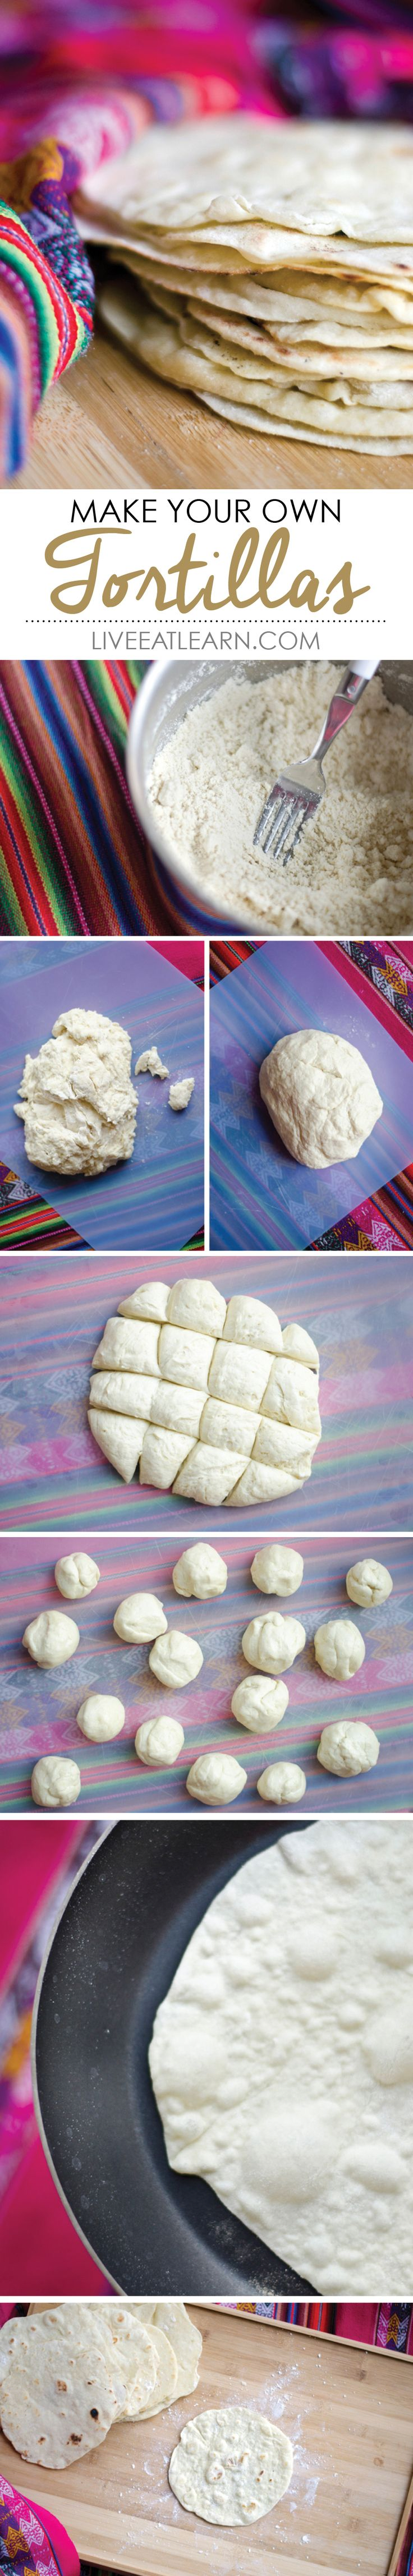 Make your own homemade flour tortillas with optional wheat, spinach, or red bell pepper! // Live Eat Learn